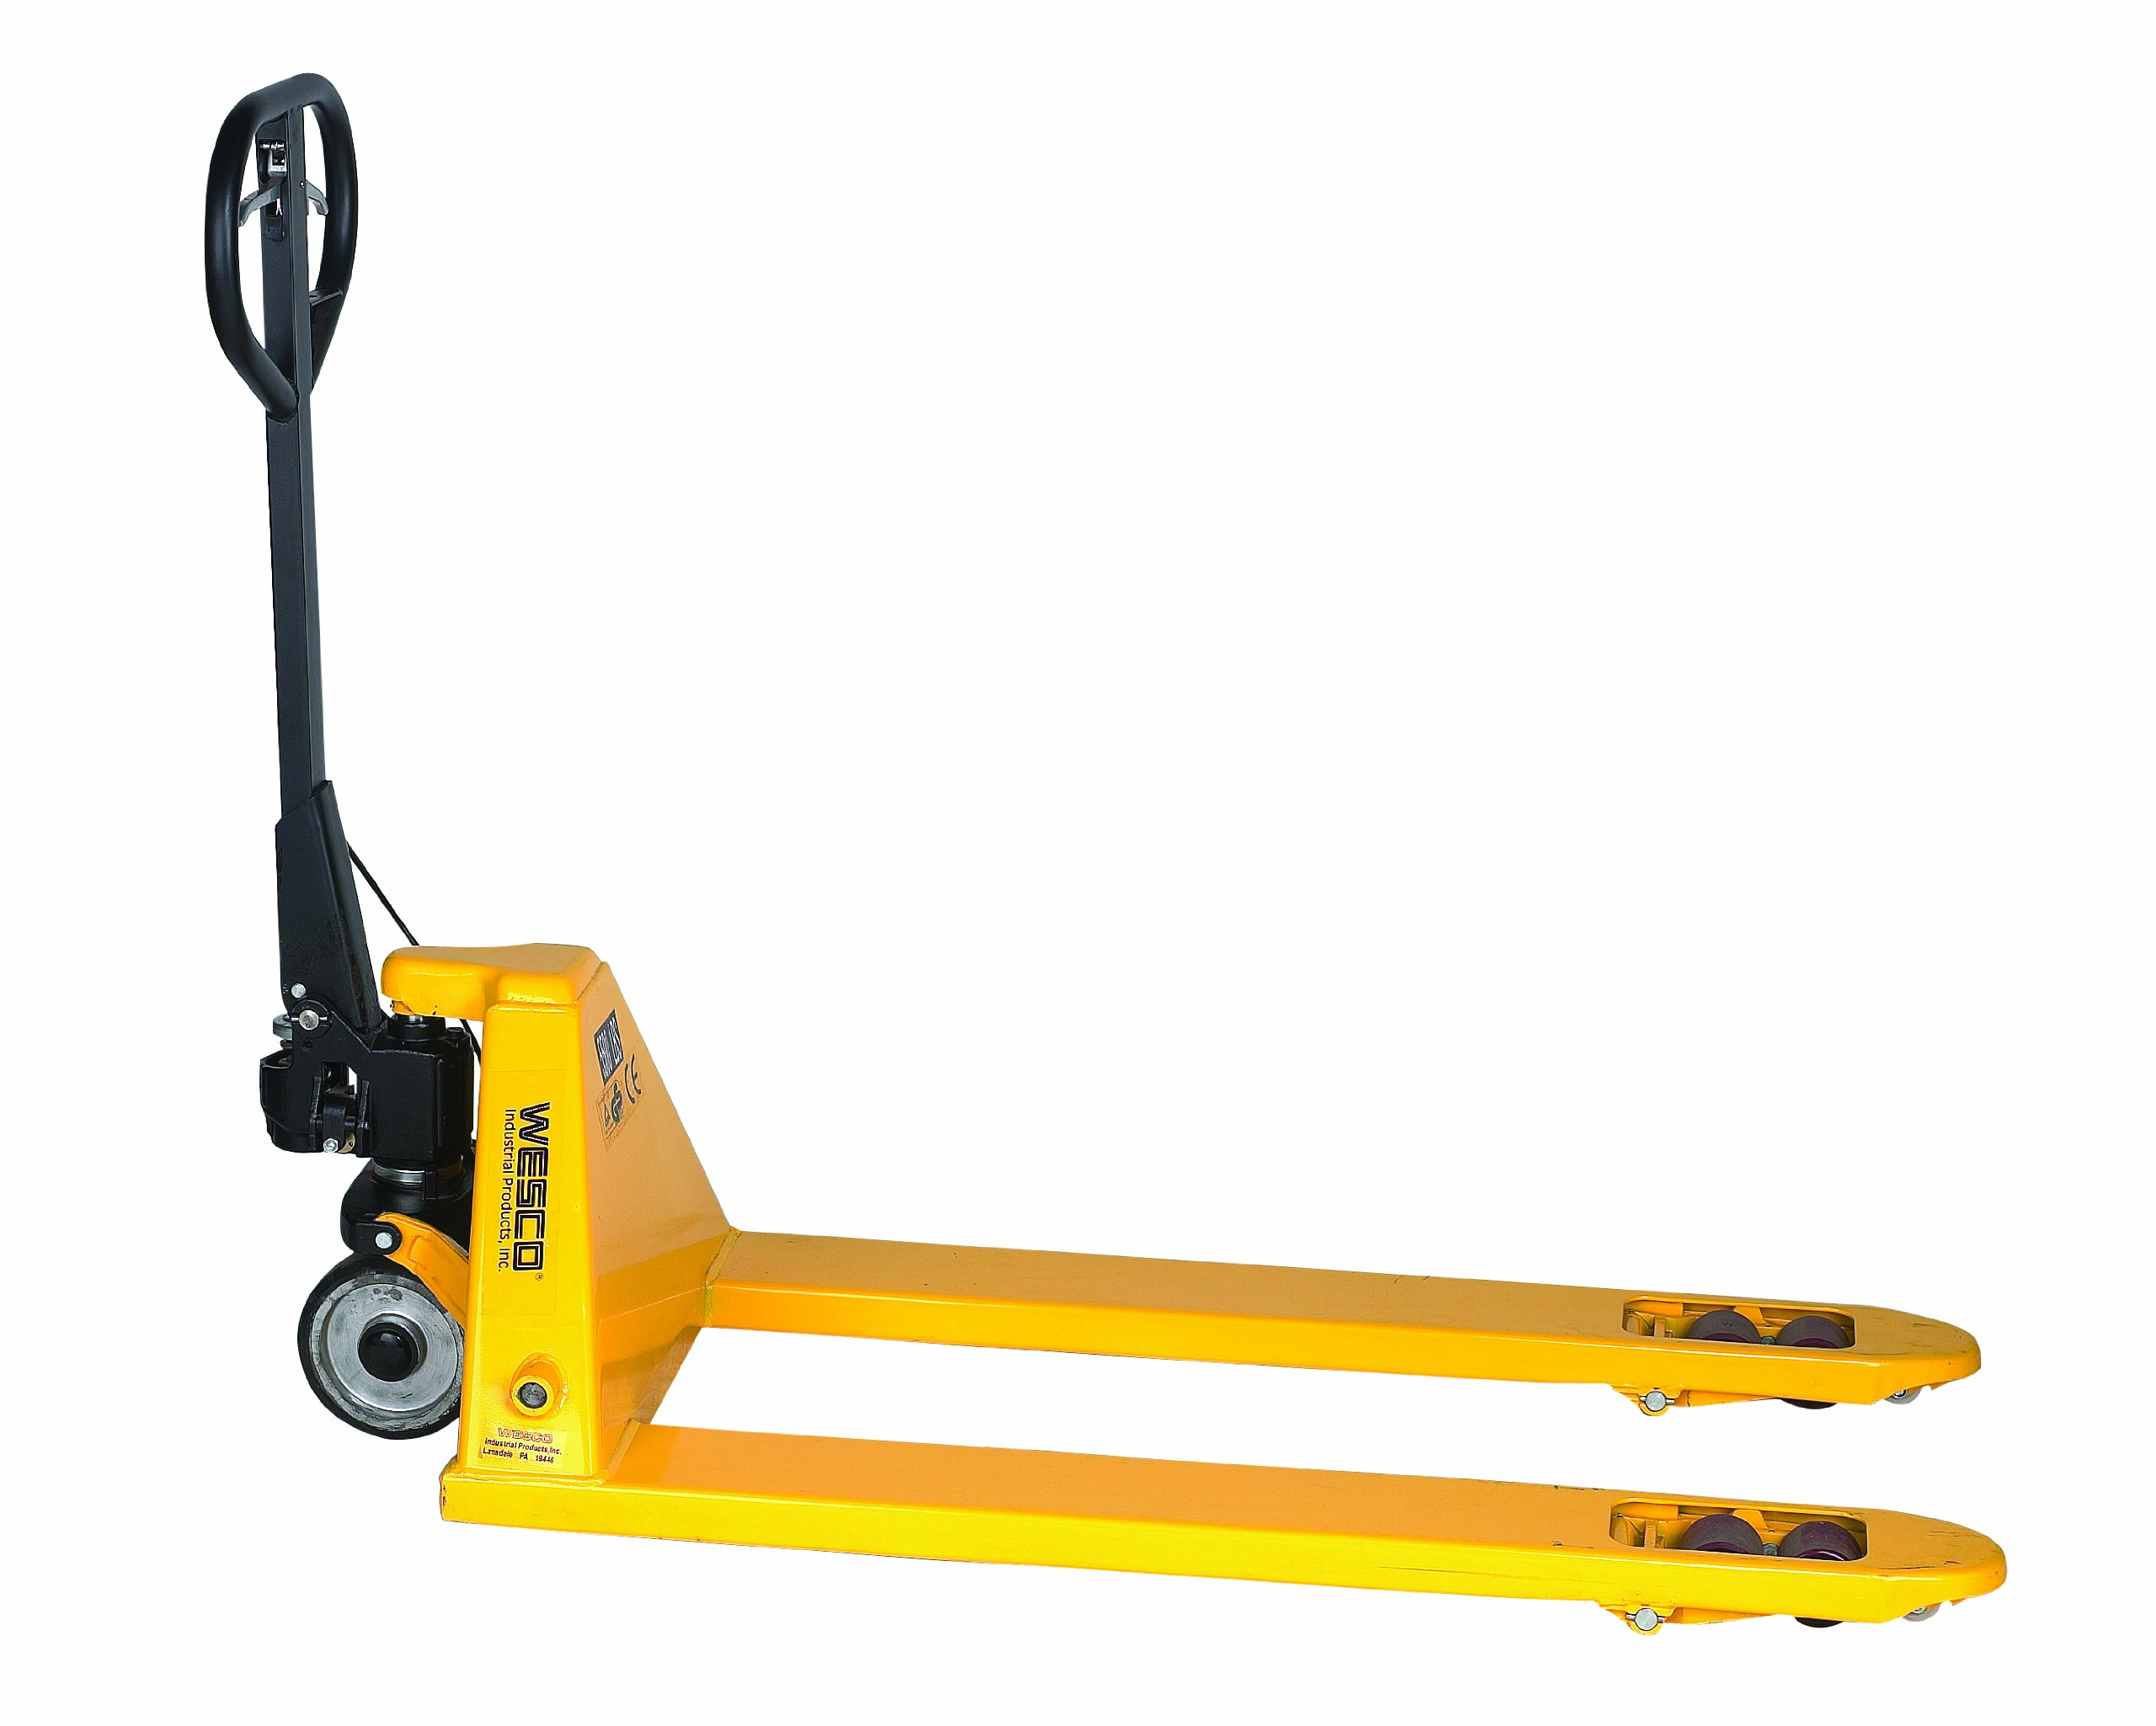 Wesco 272667 Pallet Truck with Hand Brake, Polyurethane Wheels, 5500 lbs Load Capacity, 48-1/4'' Height, 48'' Length x 27'' Width